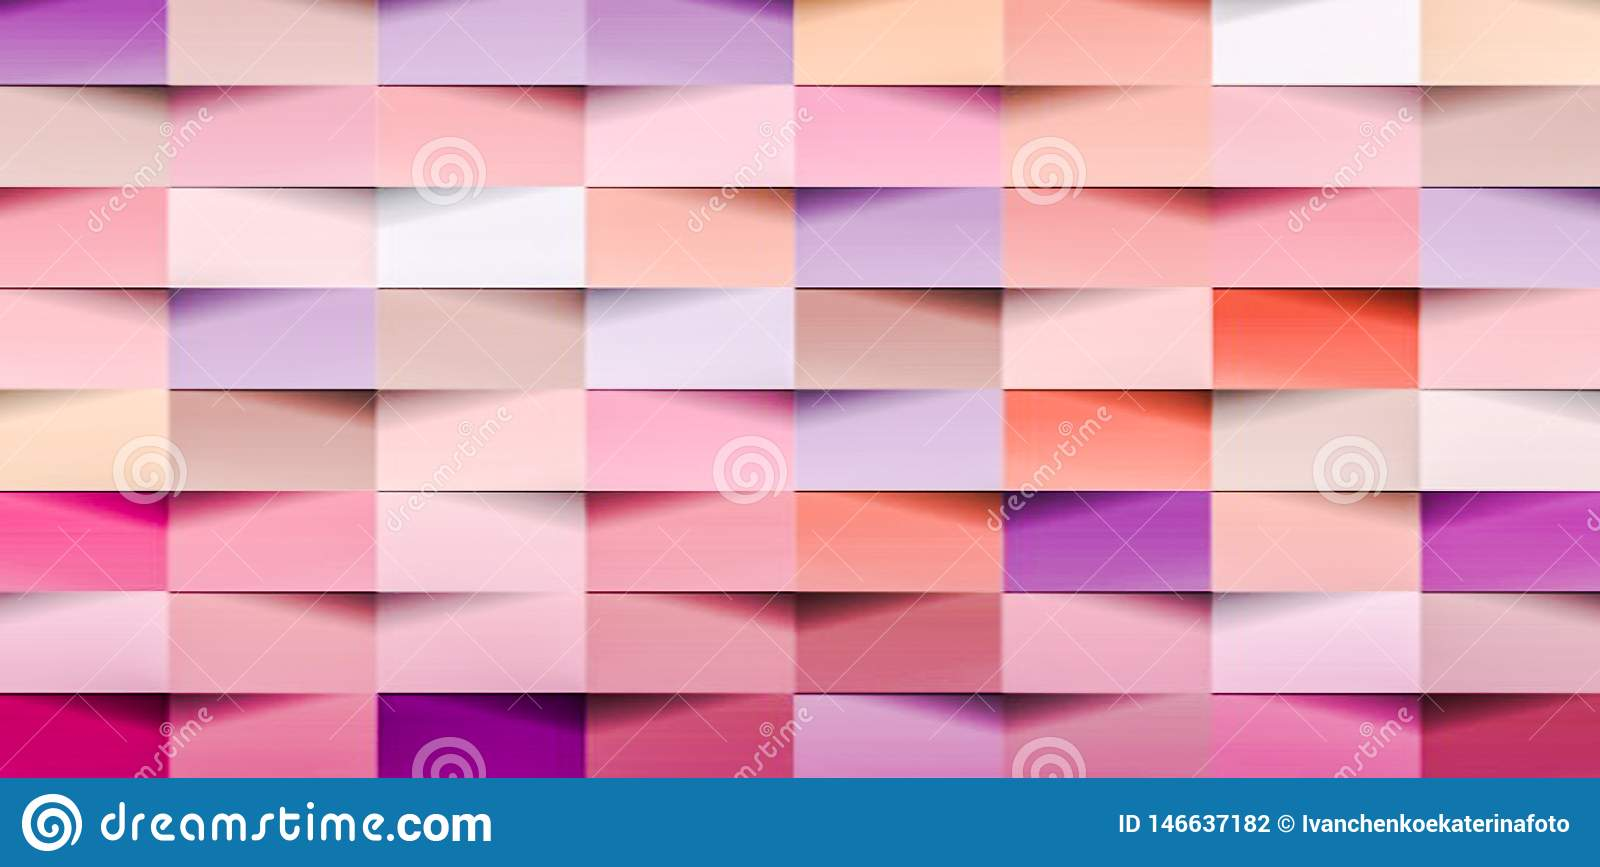 Very colorful full screen background of paper!